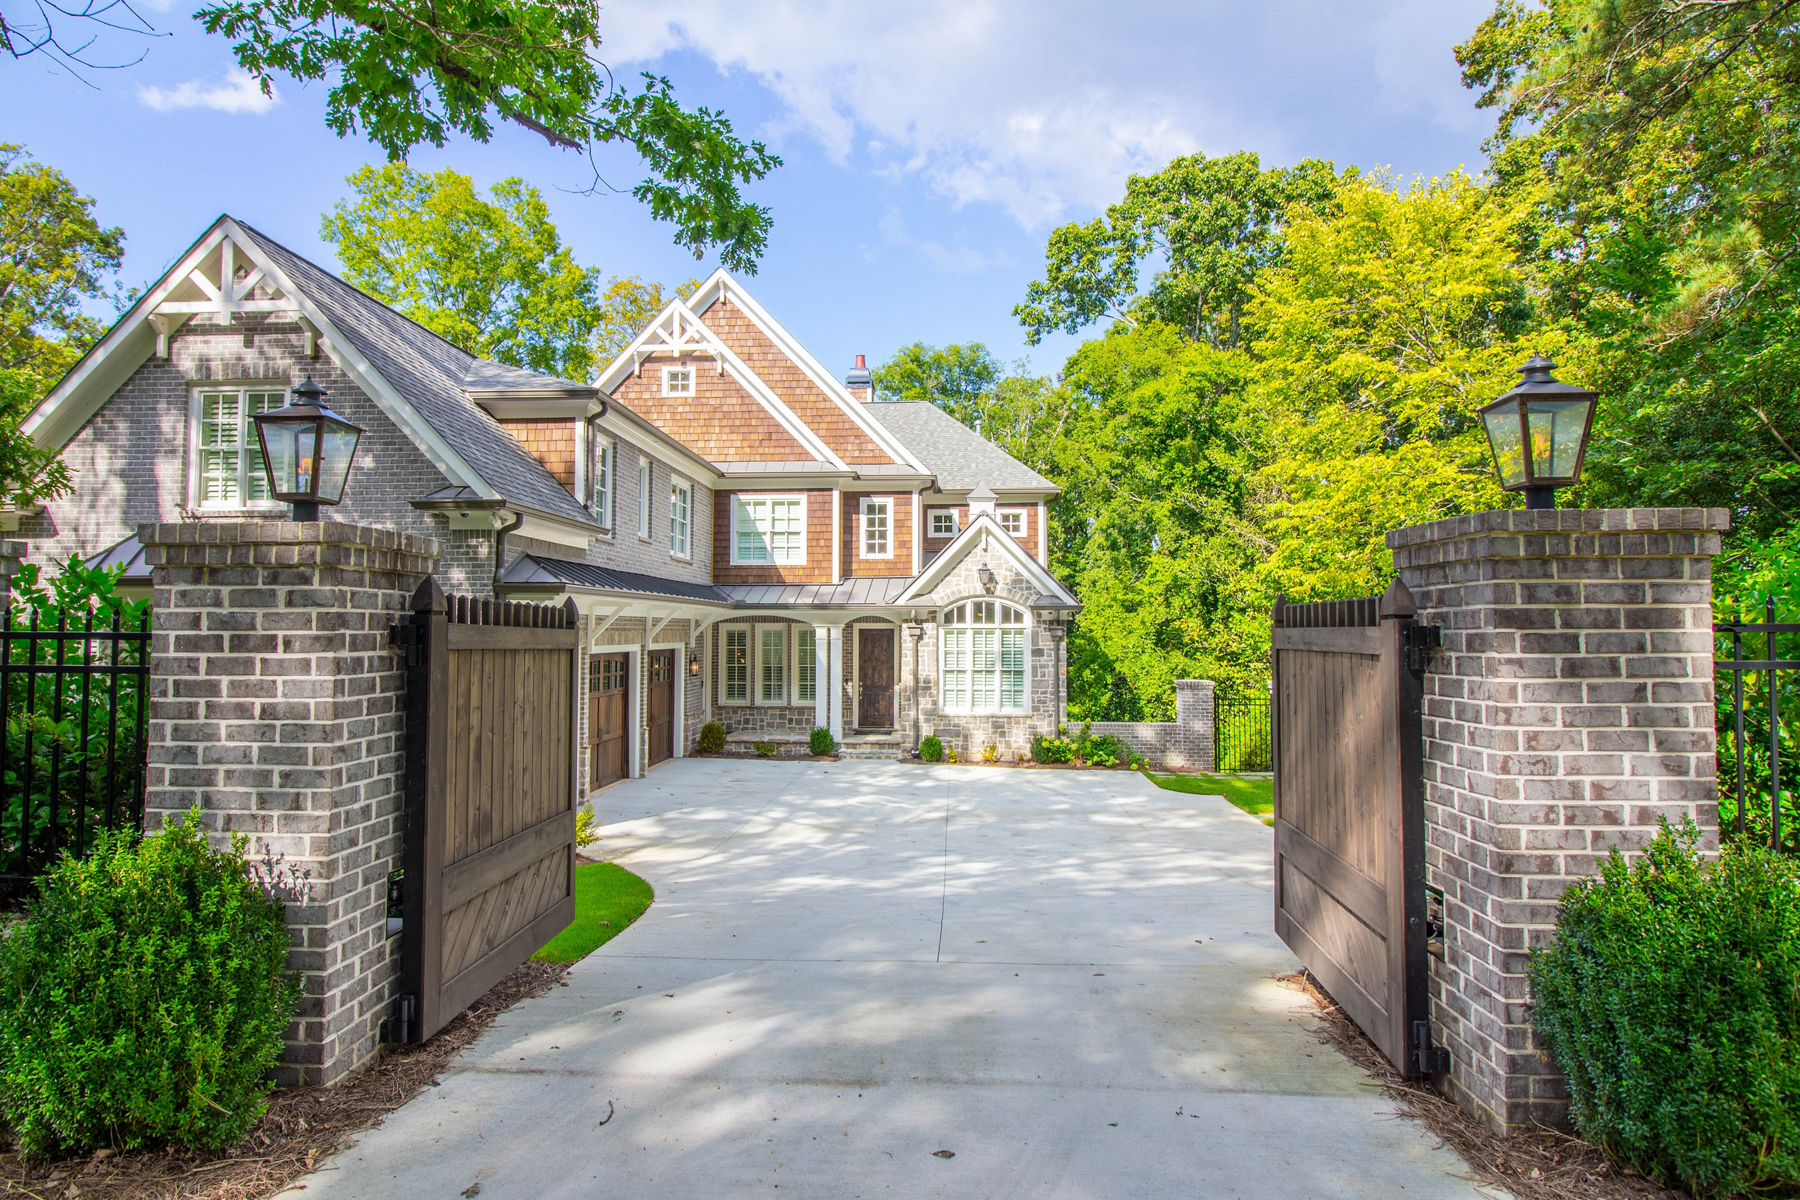 一戸建て のために 賃貸 アット Superior Construction With Full Automation Throughout 1685 Mount Paran Road NW Atlanta, ジョージア 30327 アメリカ合衆国